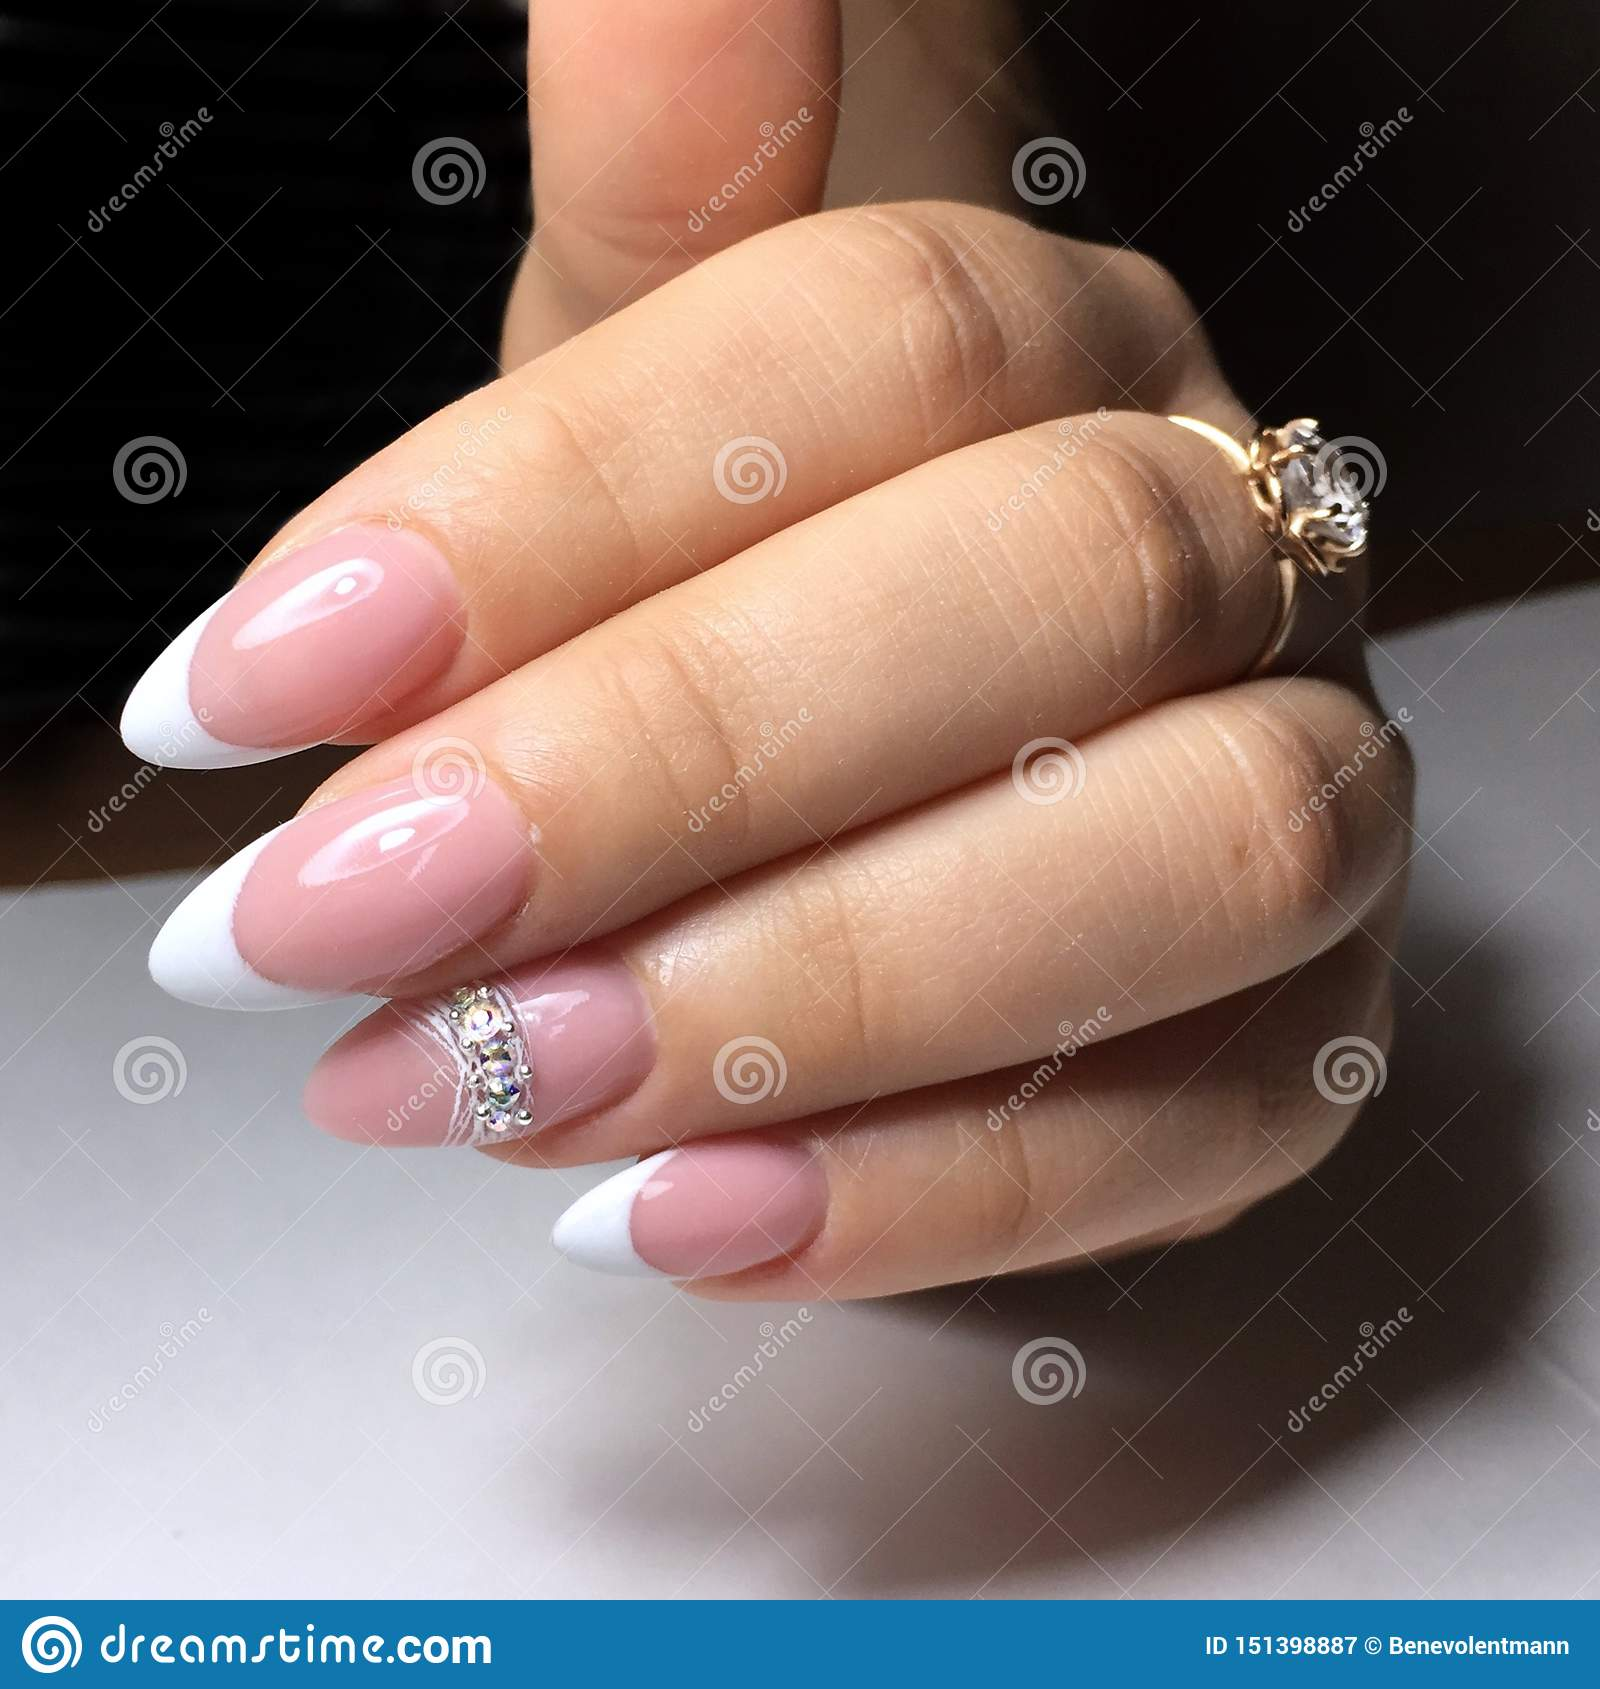 French Manicure On The Nails French Manicure Design Manicure Gel